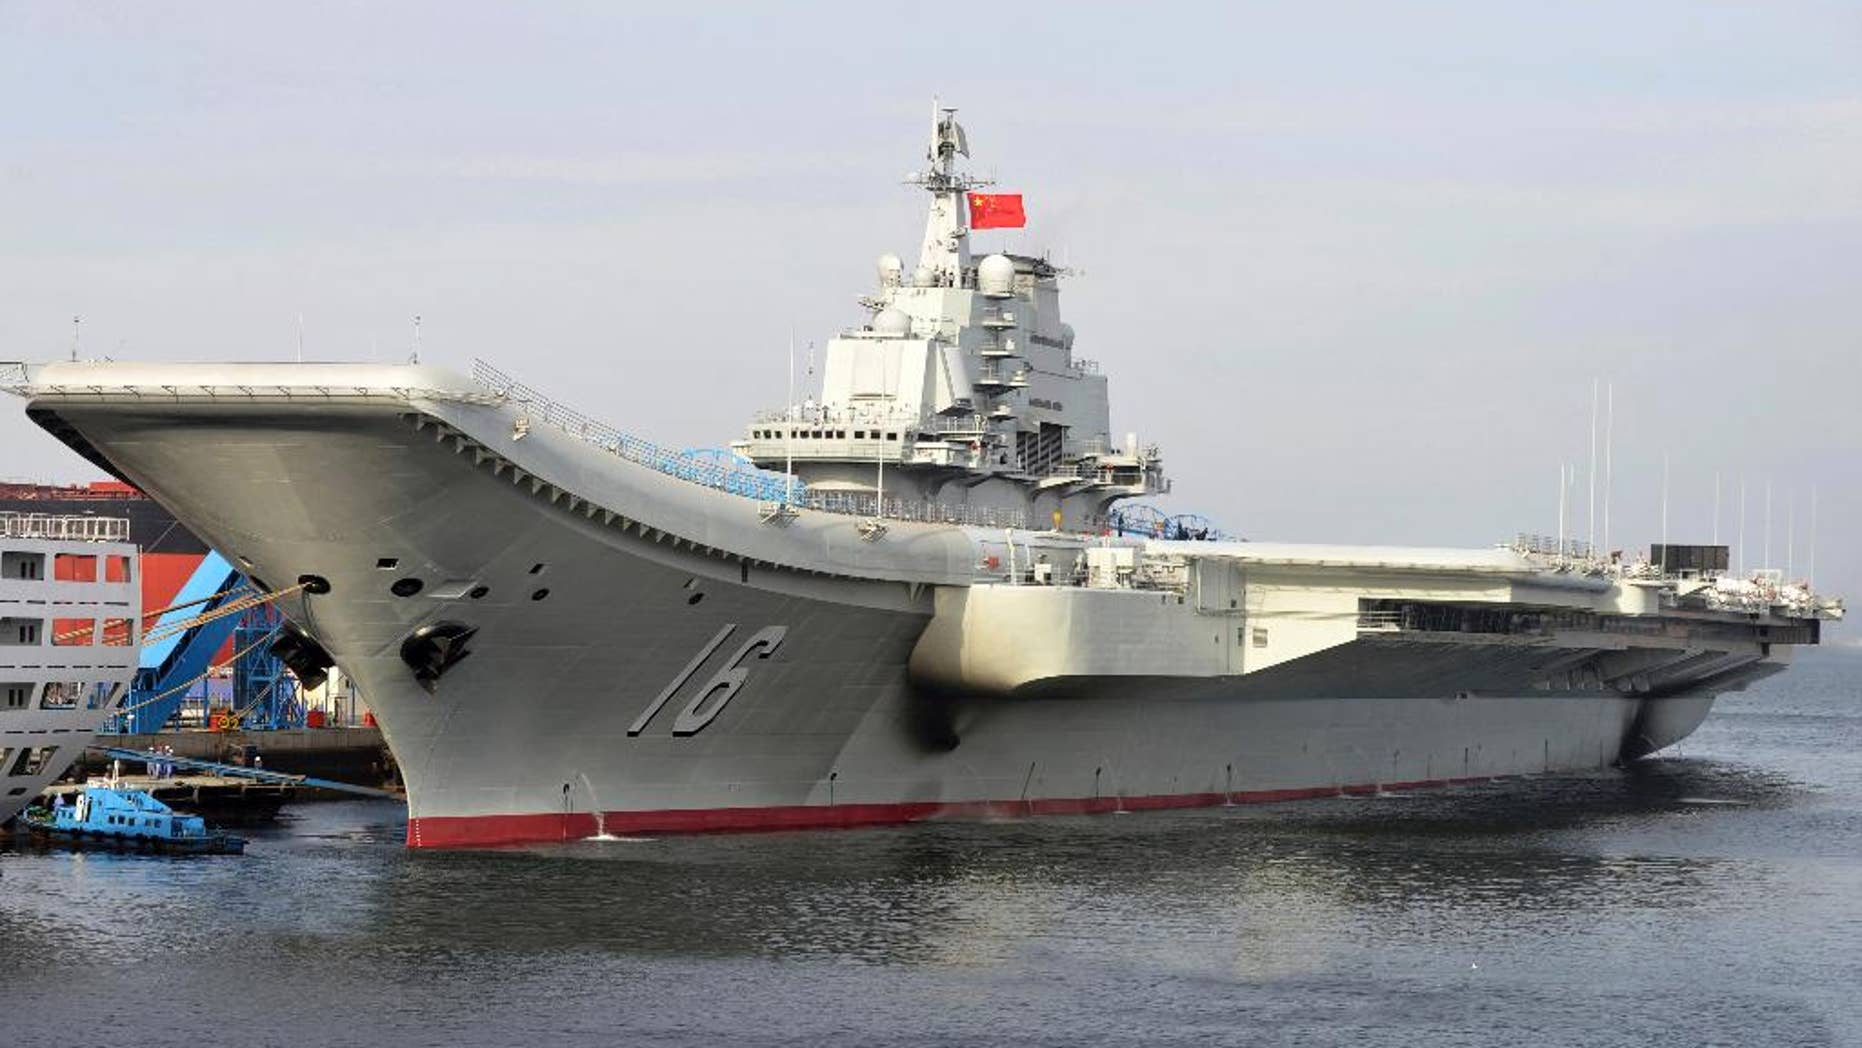 FILE - In this undated file photo released by China's Xinhua News Agency, China's aircraft carrier Liaoning berths in a port of China. China's military says its first aircraft carrier group has carried out a series of fighter launch, recovery and air combat exercises in the Yellow Sea amid tensions with the U.S. and Taiwan. The Defense Ministry announced late Friday that the Liaoning carrier group conducted the drills in the Yellow Sea in recent days and is scheduled to continue exercises farther afield. (AP Photo/Xinhua, Li Tang, File)